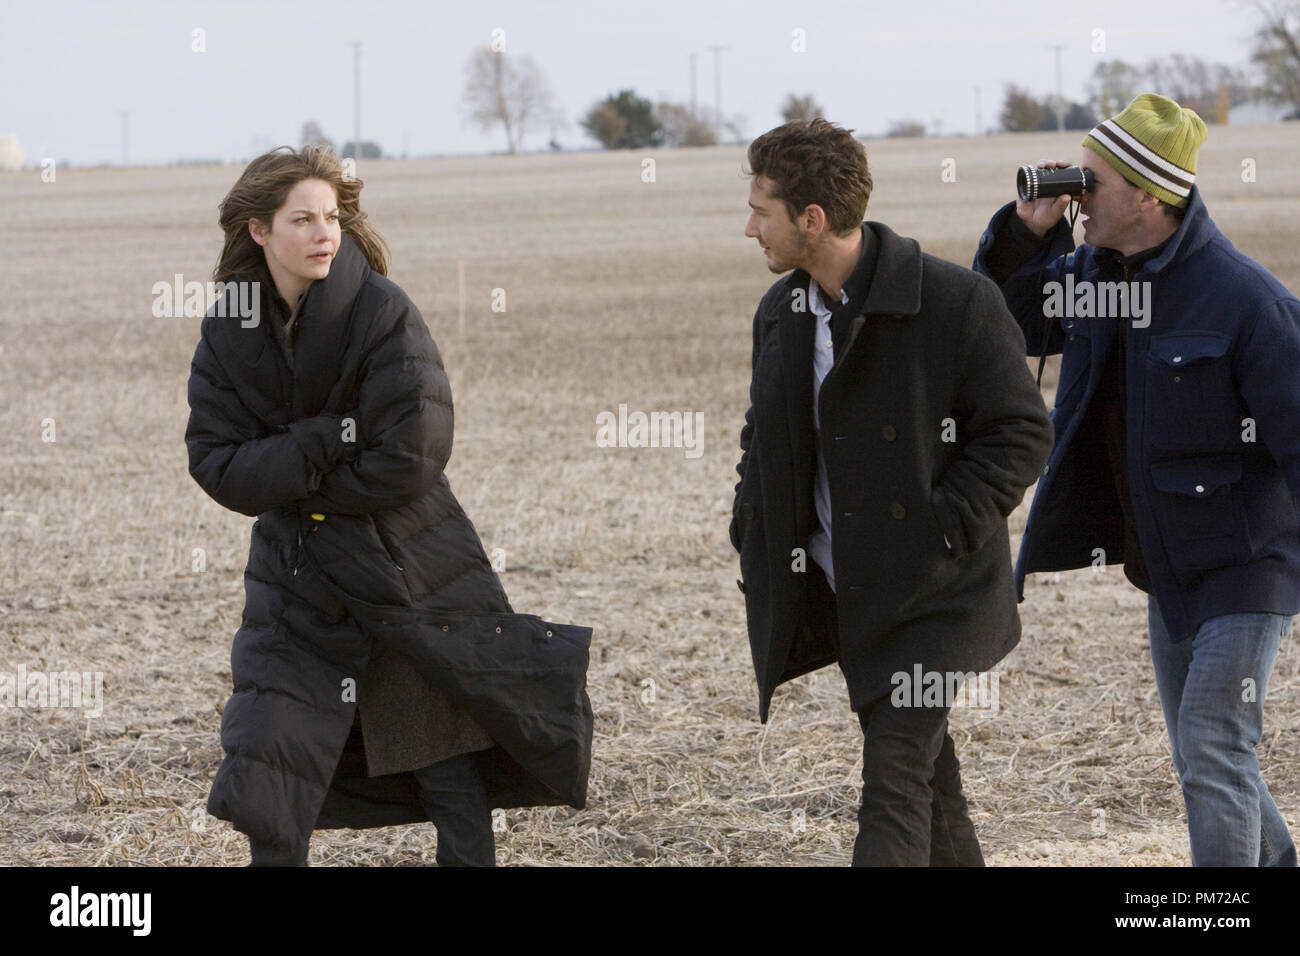 """Film Still from """"Eagle Eye"""" Michelle Monaghan, Shia LaBeouf, director D.J. Caruso © 2008 Dream Works Photo Credit: Ralph Nelson   File Reference # 30755480THA  For Editorial Use Only -  All Rights Reserved Stock Photo"""